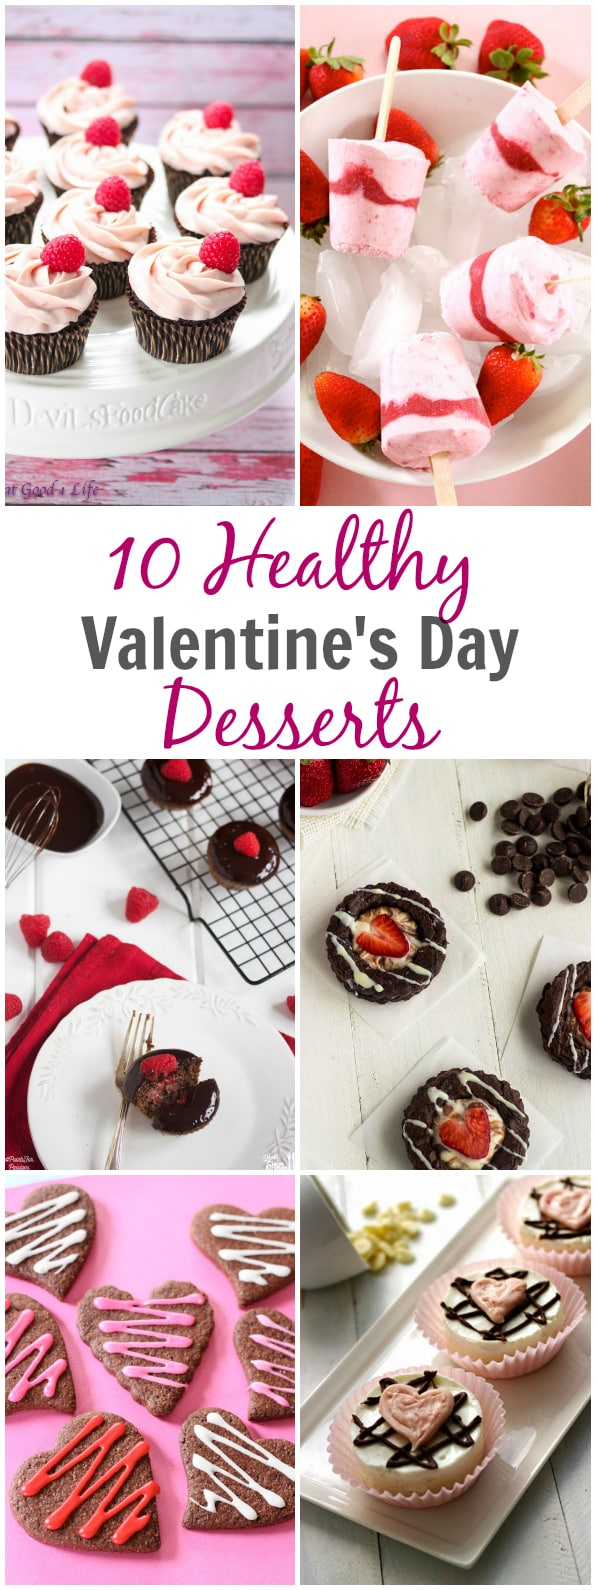 10 Healthy Valentine's Day Desserts 1